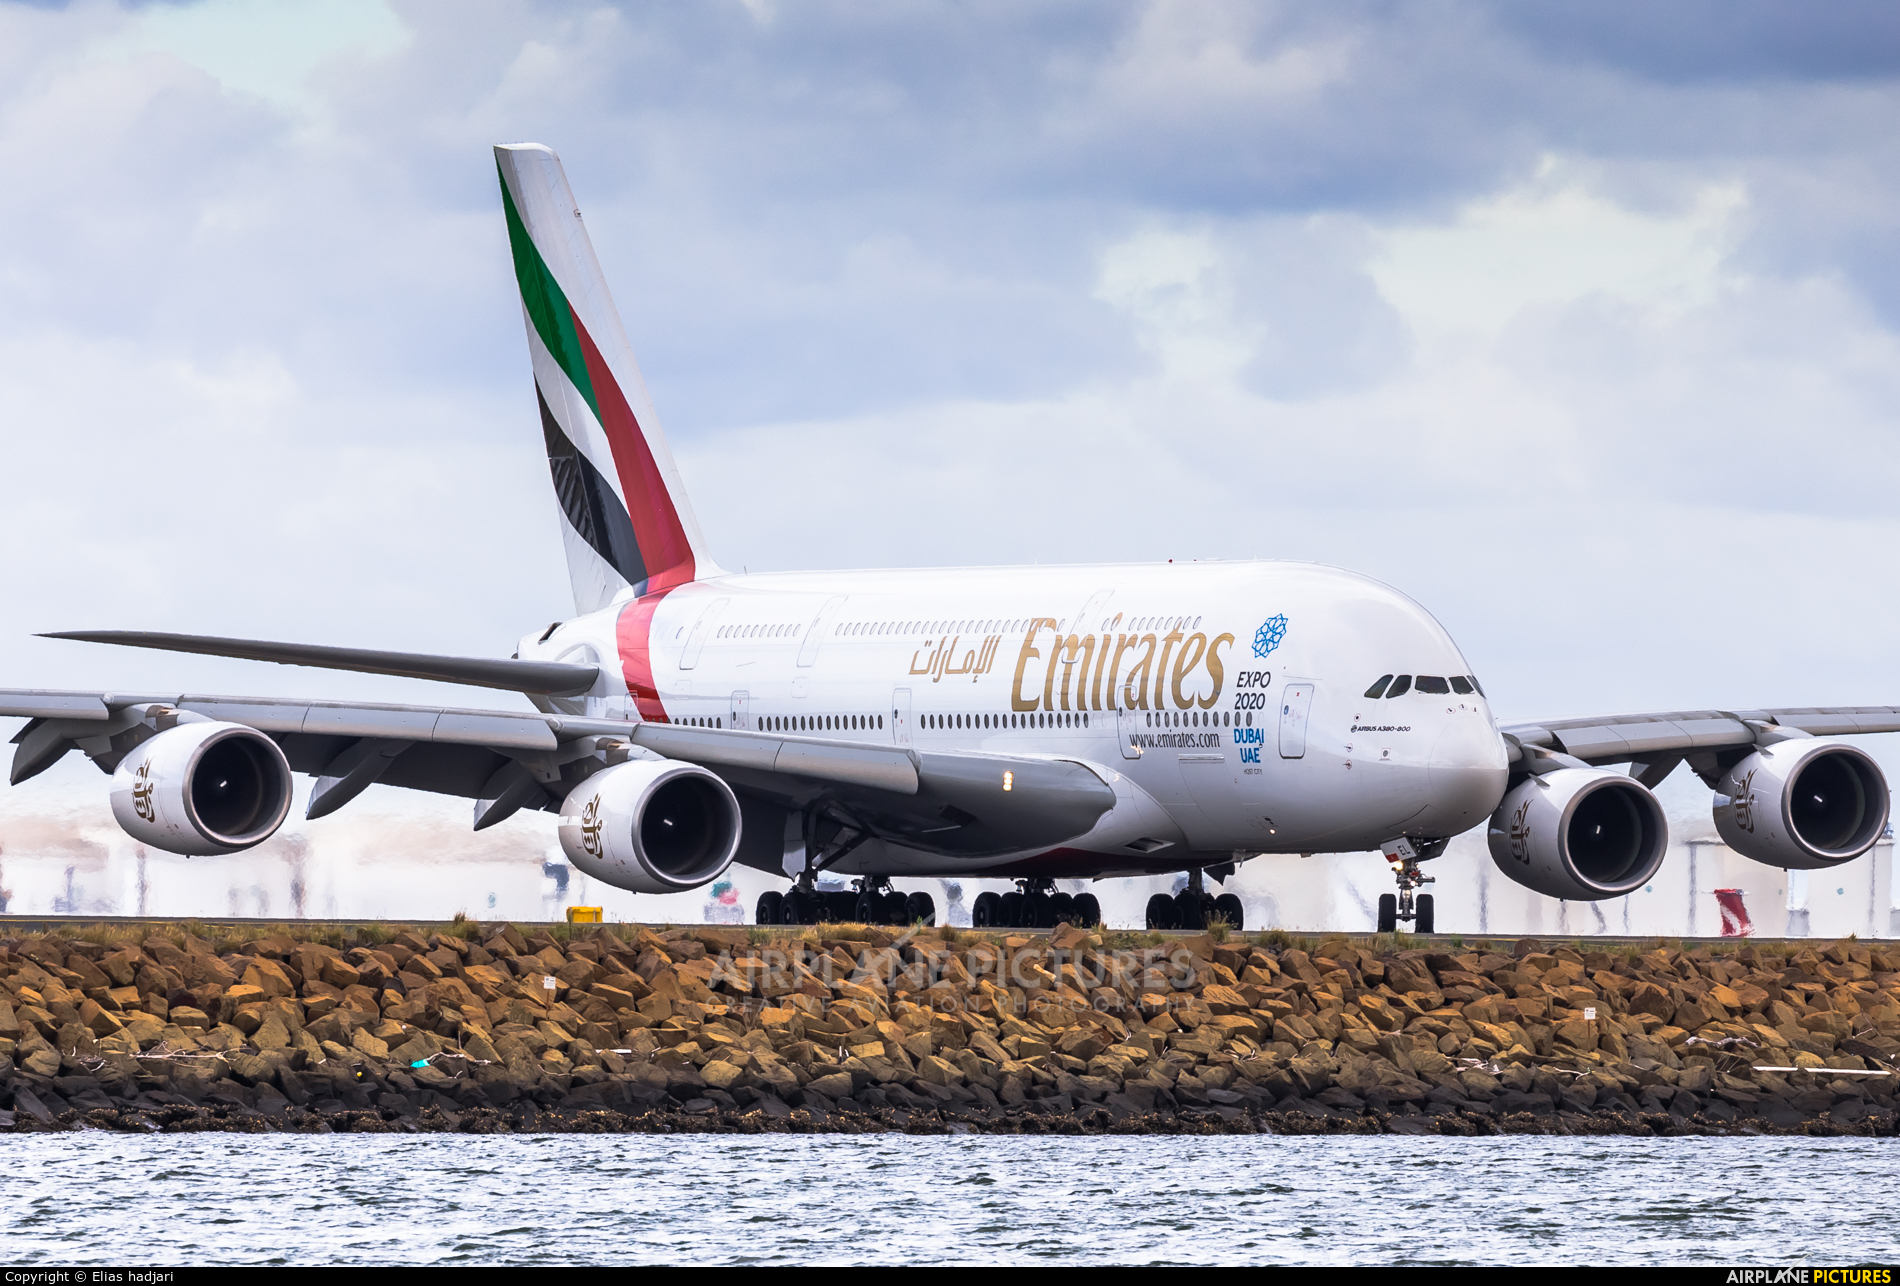 Emirates Airlines A6-EEL aircraft at Sydney - Kingsford Smith Intl, NSW